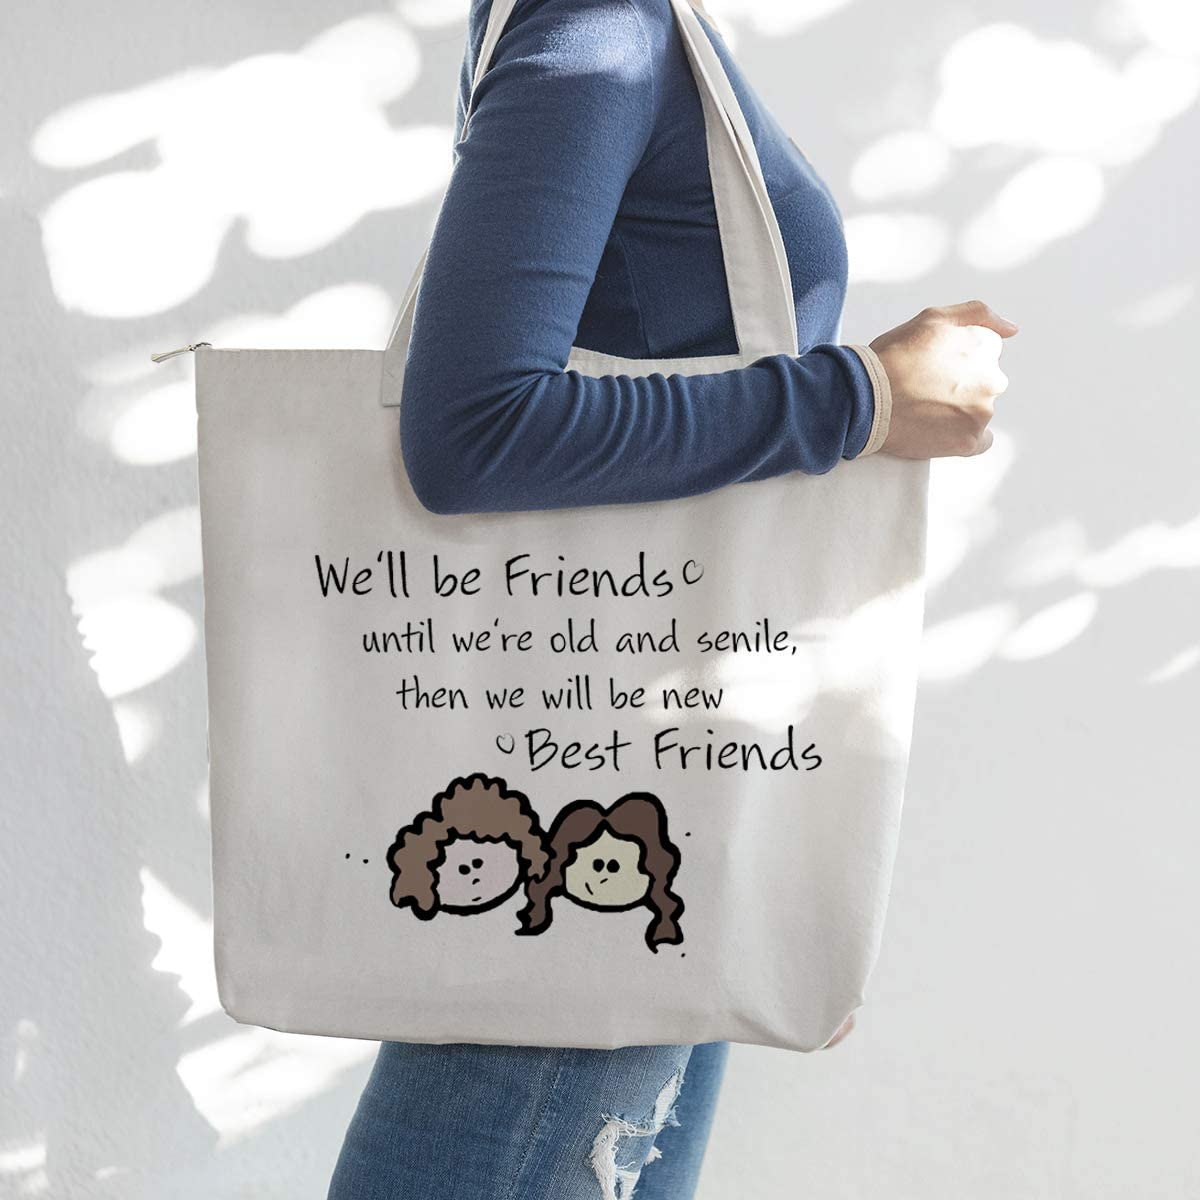 We'll be Friends Until We are Old and Senile - Best Friend BFF Gifts for Women - Funny Long Distance Birthday, Gift for Unbiological Soul Sister, Besties -Tote Bag for Women,Canvas Tote Bag